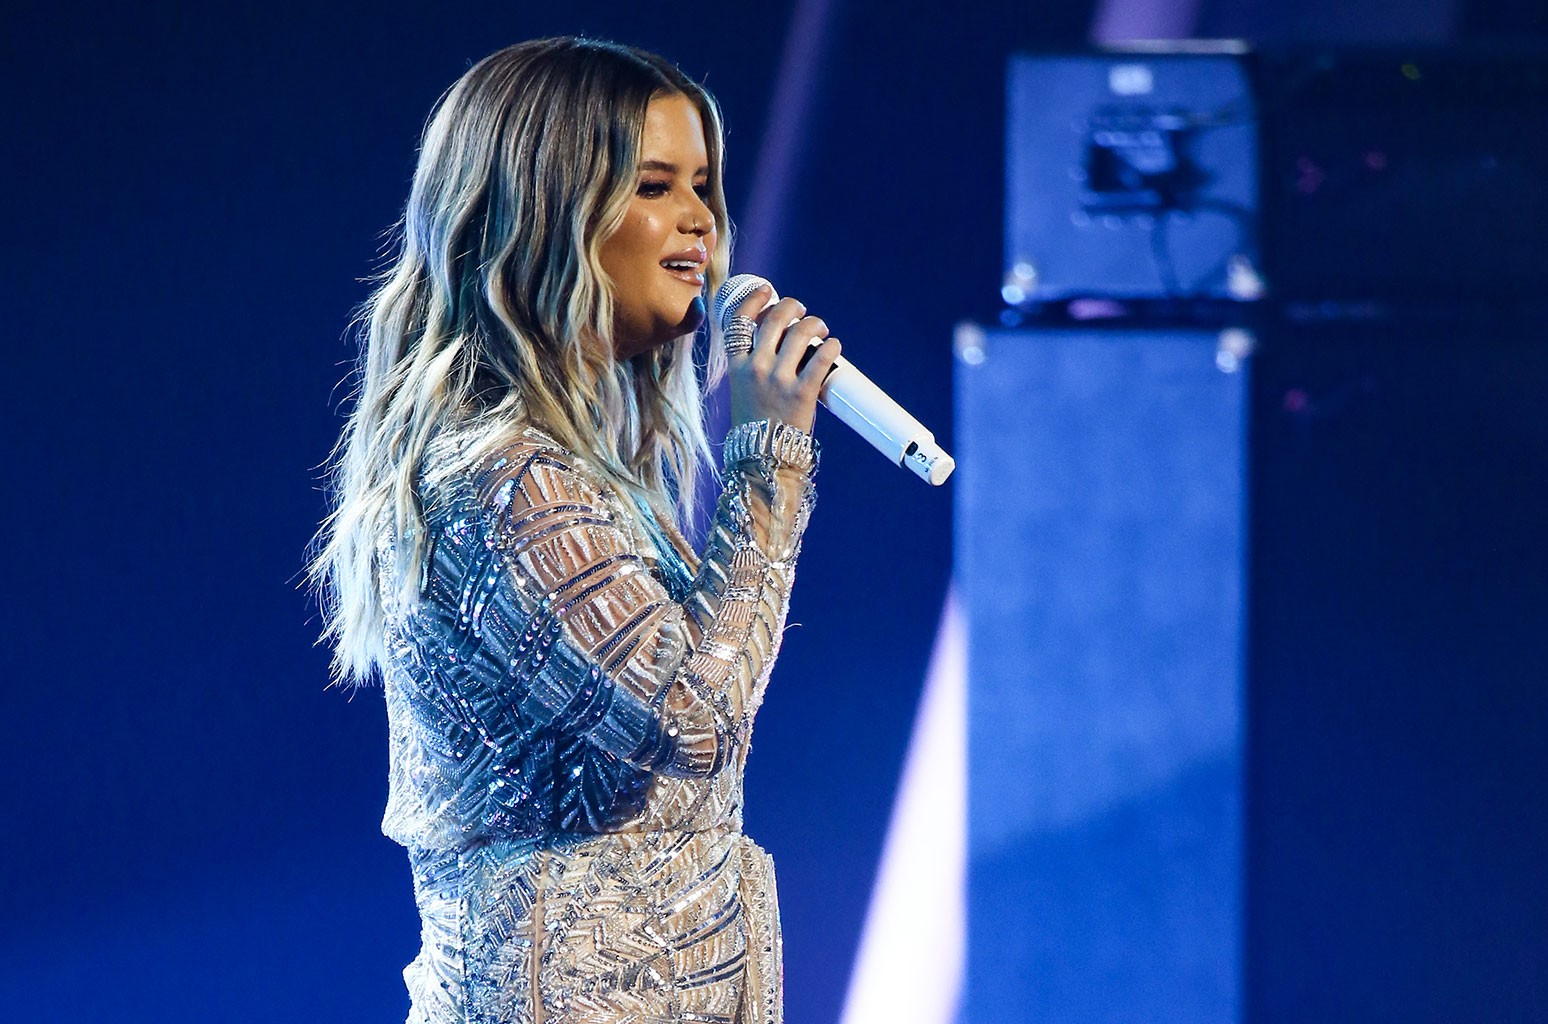 Cma Christmas Special 2020 Artists Performed Pictures 8 Can't Miss Moments From the 2020 CMA Awards   Billboard